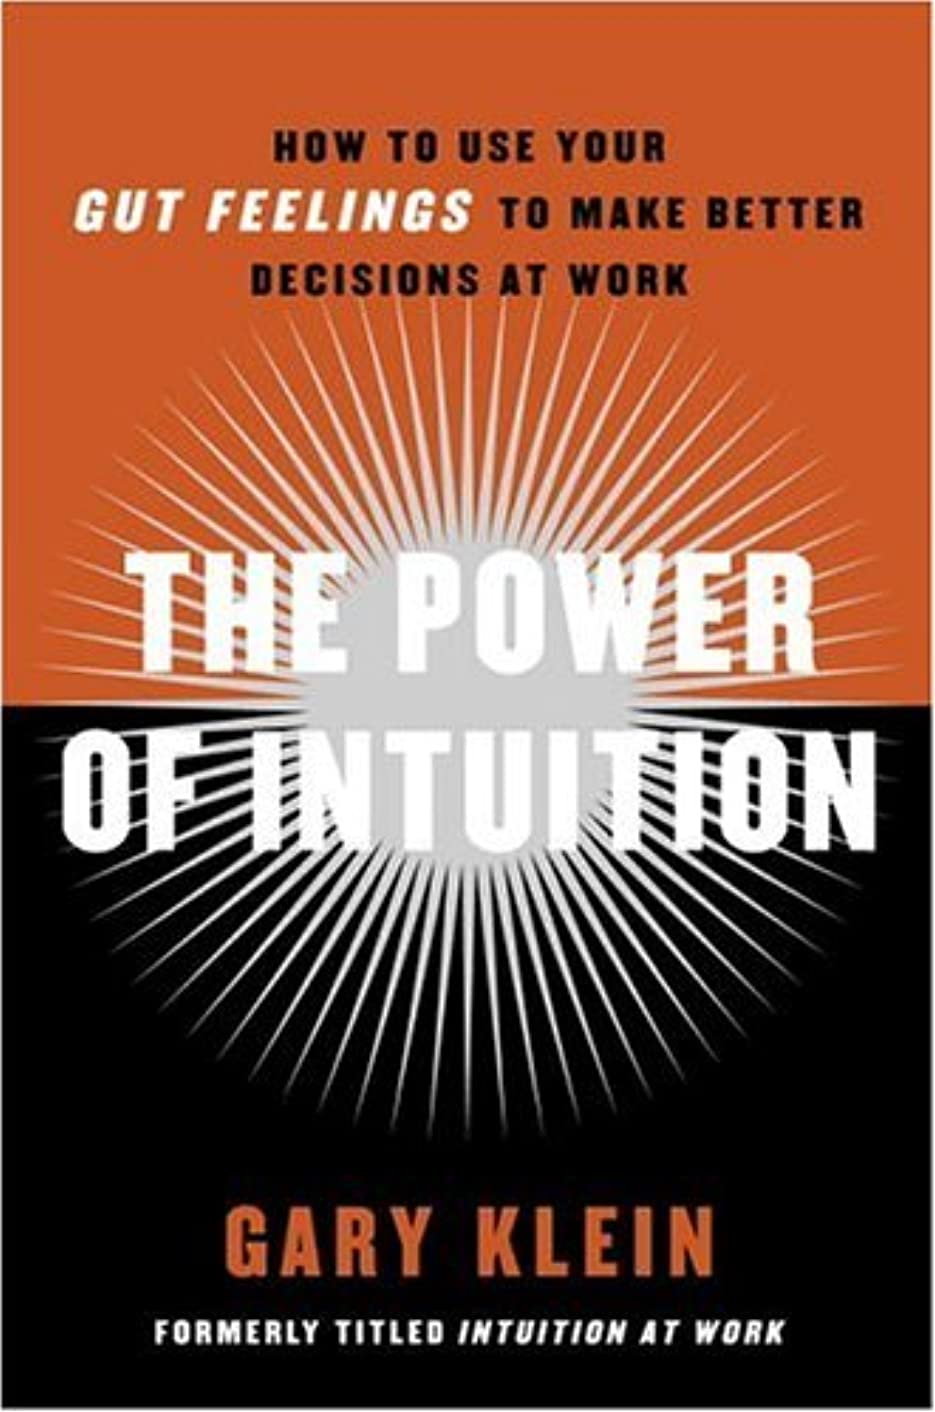 宿題閃光悲しいことにThe Power of Intuition: How to Use Your Gut Feelings to Make Better Decisions at Work (English Edition)